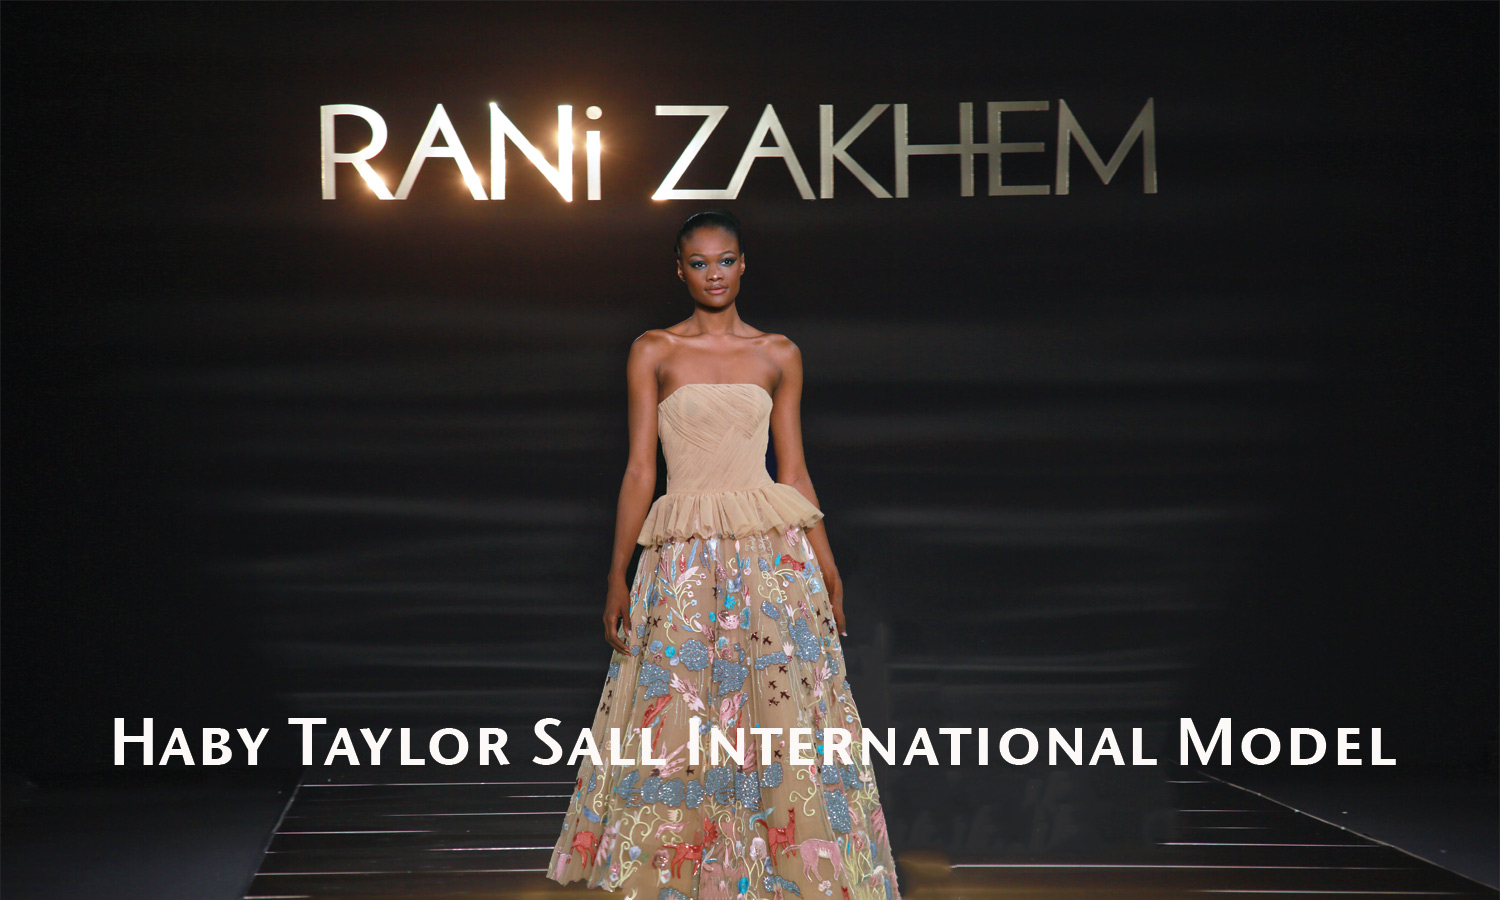 AFRICAN FASHION STYLE MAGAZINE - PARIS FASHION WEEK COUTURE BY RANI ZAKHEM - MODEL HAY TAYLOR SALL - RP MEPHISTOPHELES - DN AFRICA -STUDIO 24 NIGERIA